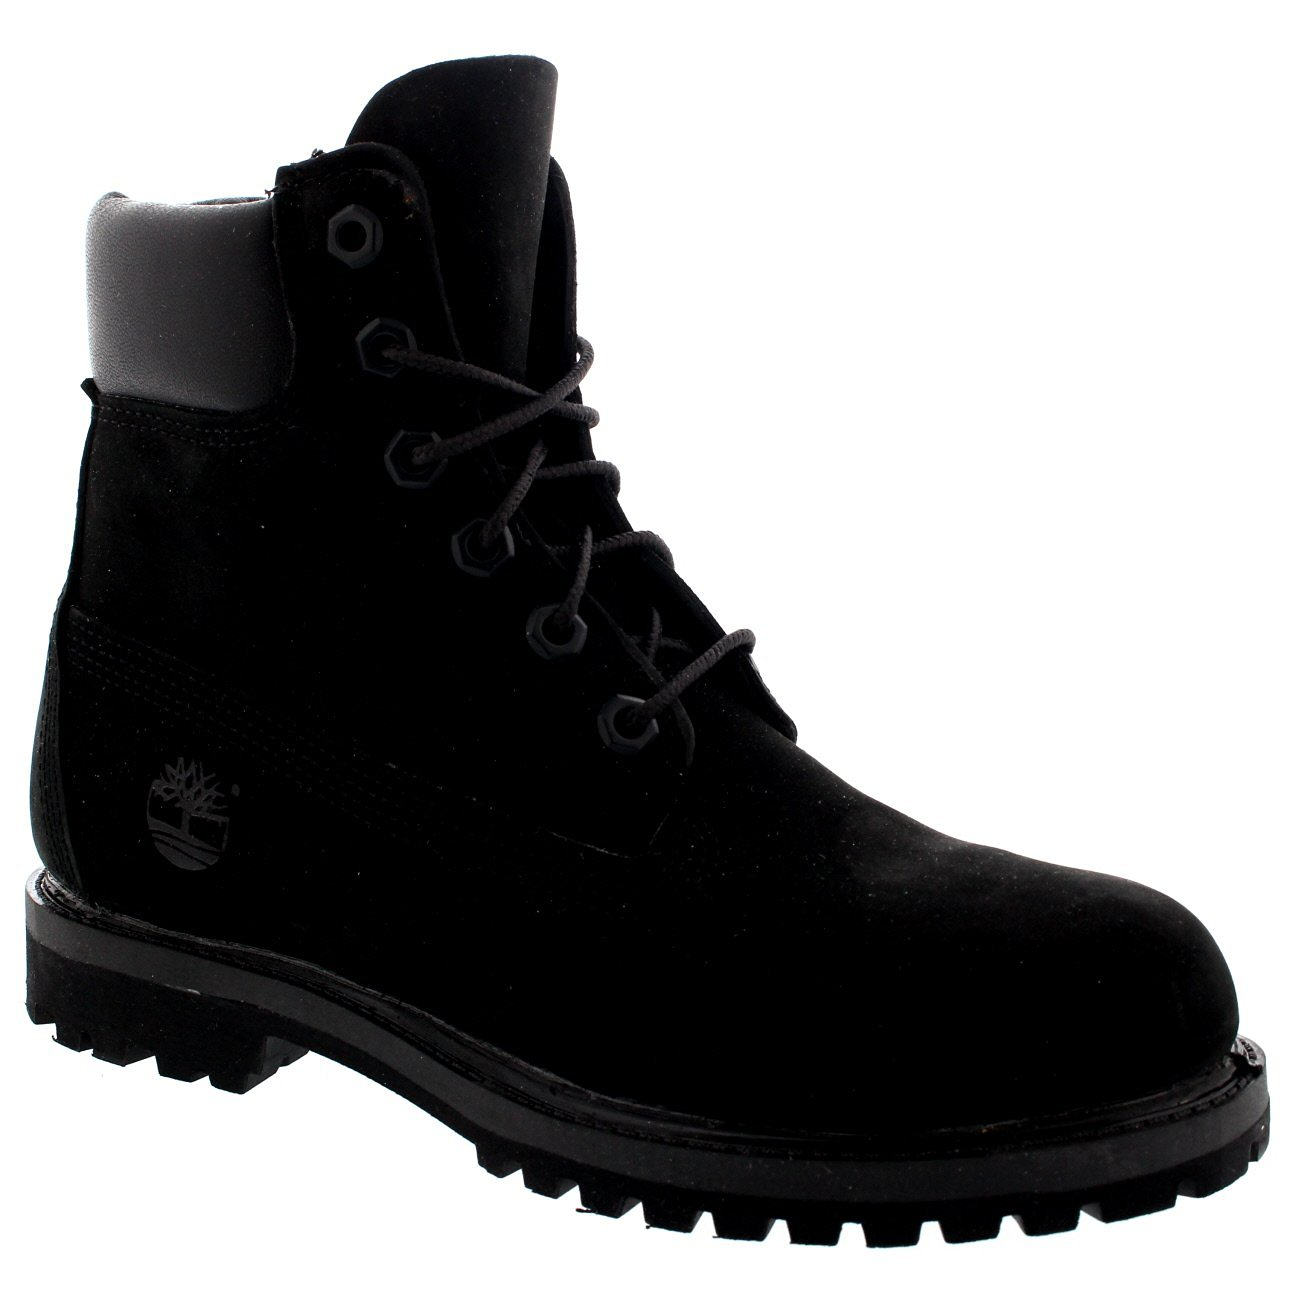 Cheap Timberland Black Boots, find Timberland Black Boots